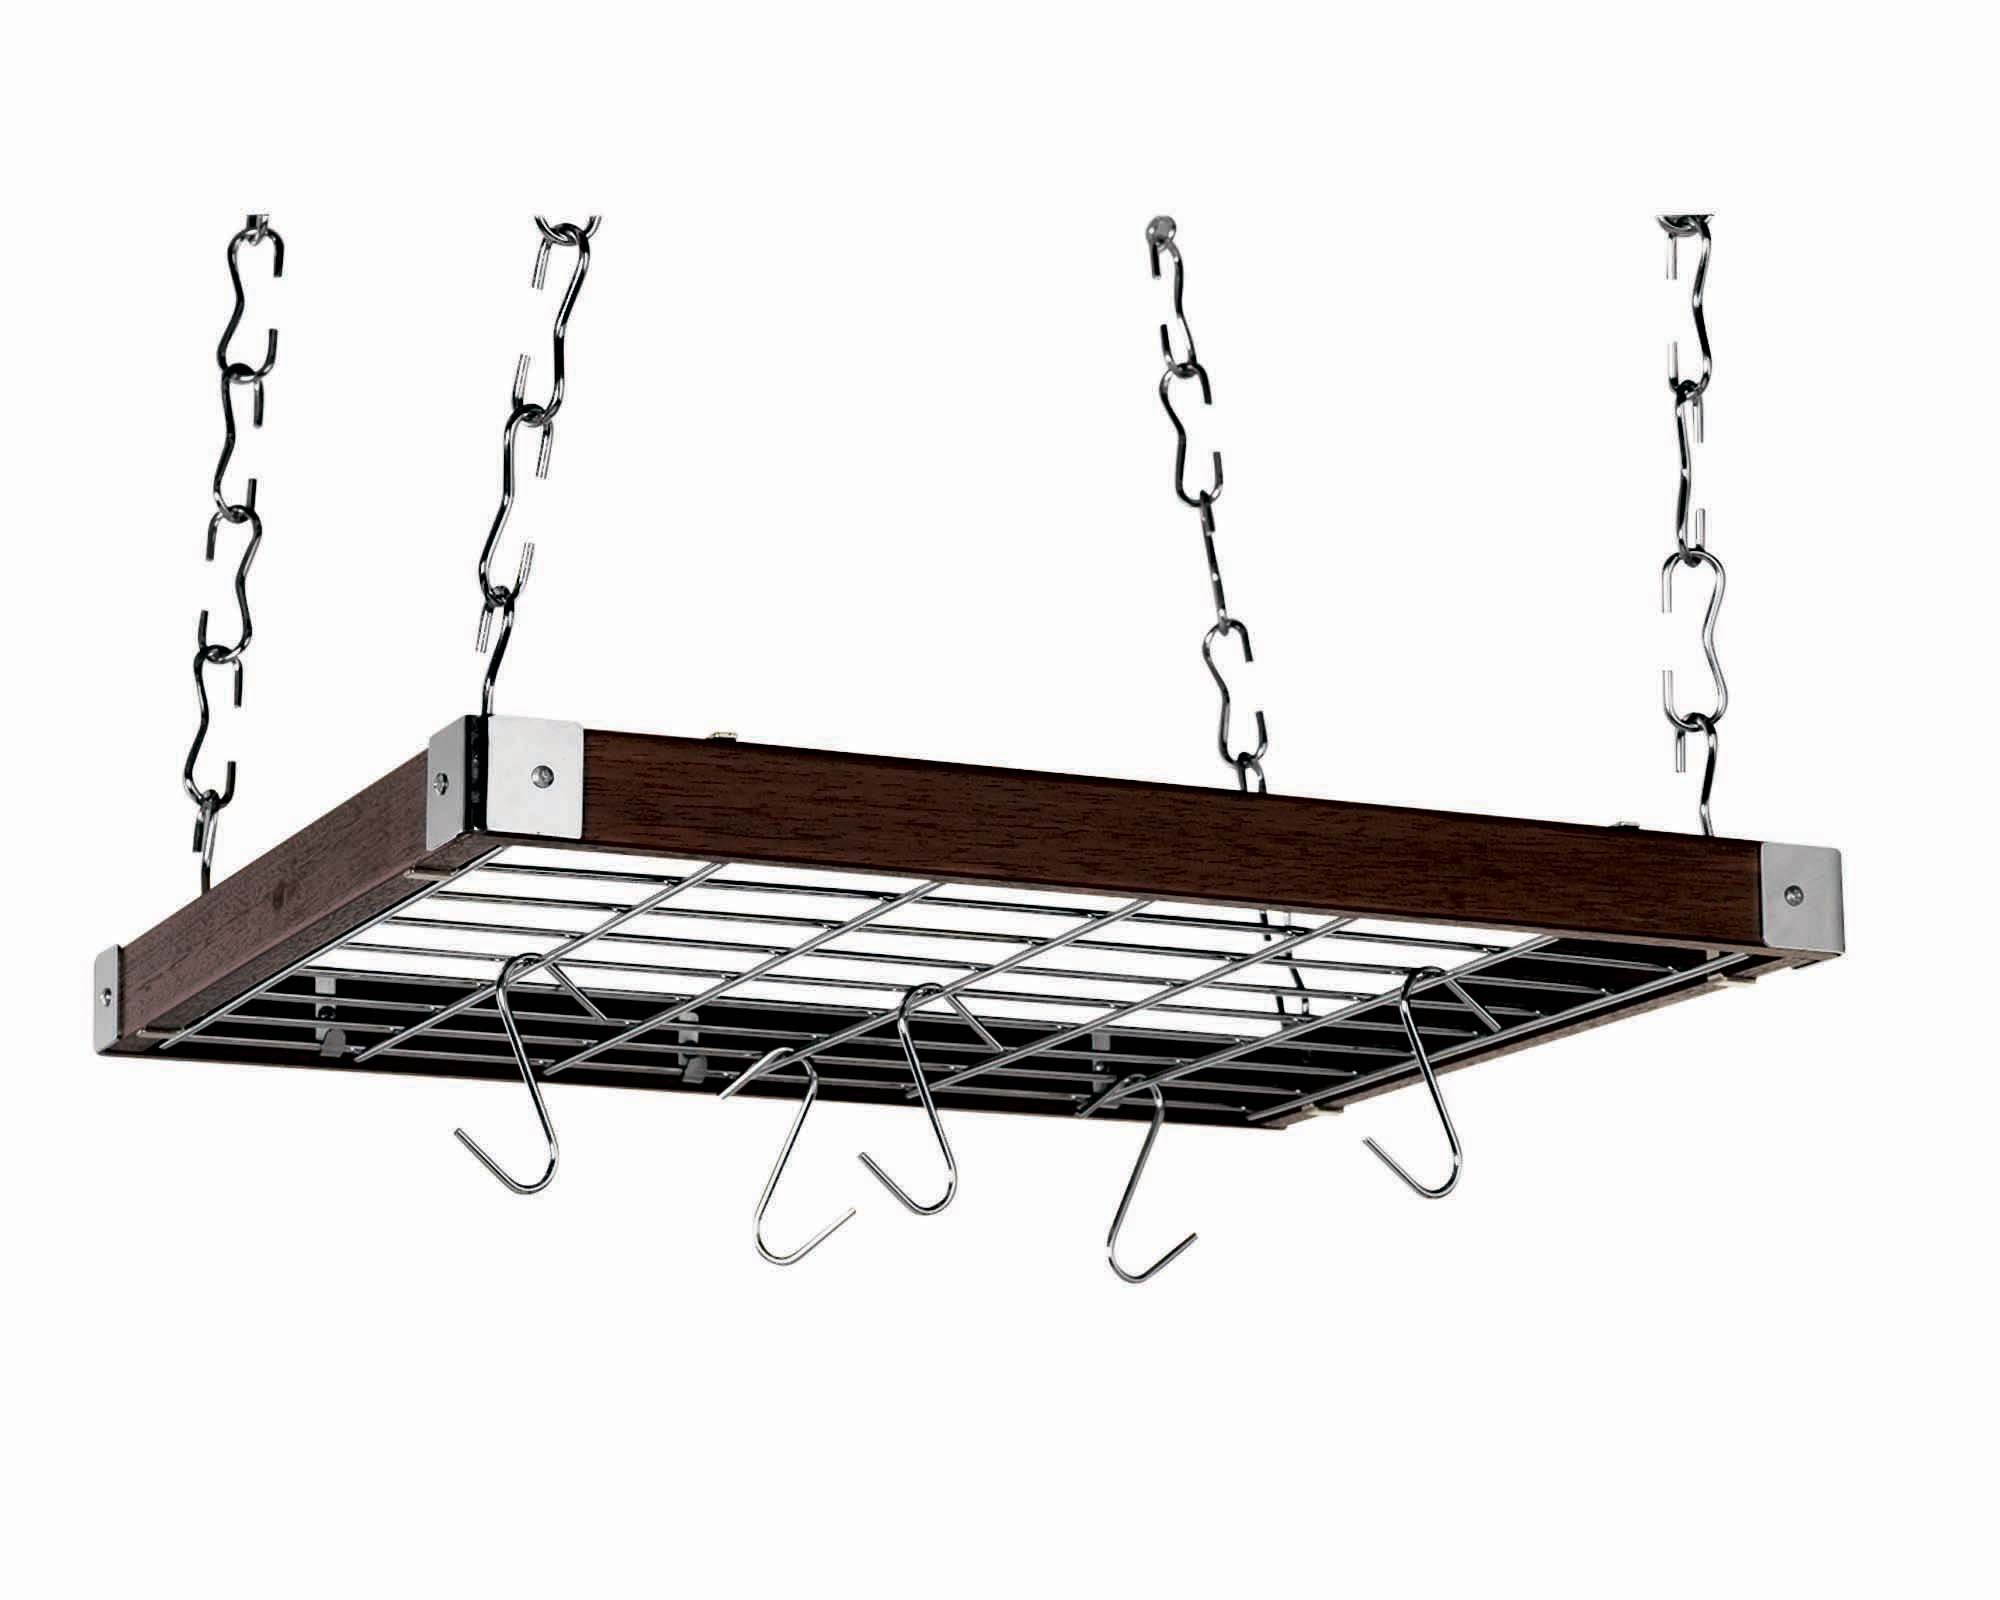 Concept Housewares PR-49293 Square Ceiling Rack - Espresso Wood 23'' X 19'',